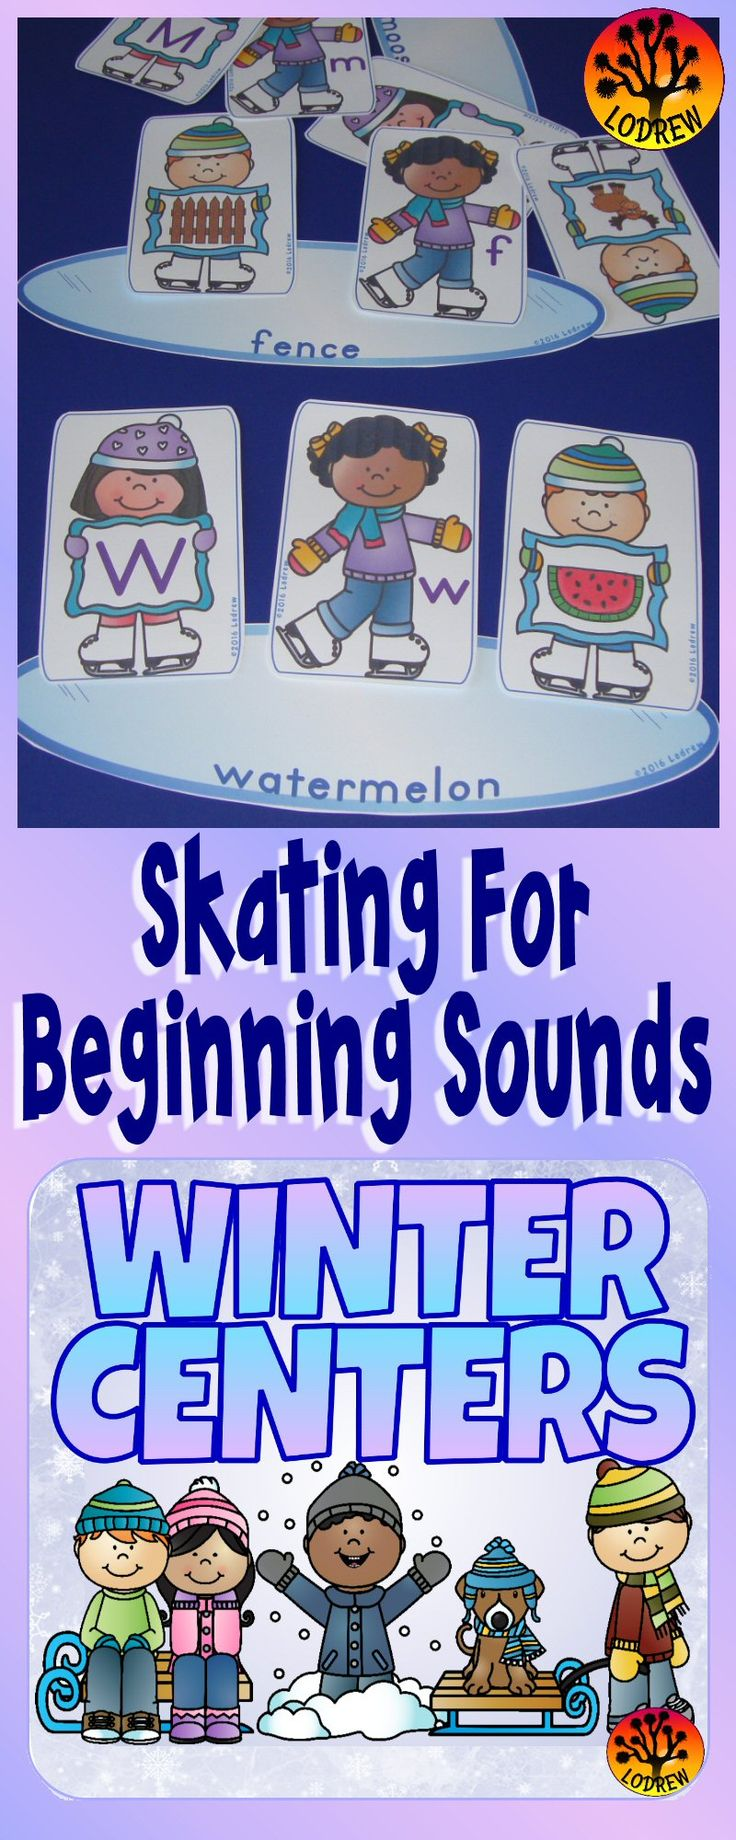 154 pages of winter centers including literacy, math, an emergent reader, winter activities, fine motor skills, visual discrimination, writing, tracing, subitizing, ten frames, cardinality, beginning sounds, colors, shapes, counting, number sets, spelling, letter matching, and more. For kindergarten, preschool, SPED, child care, homeschool, or any early childhood setting.